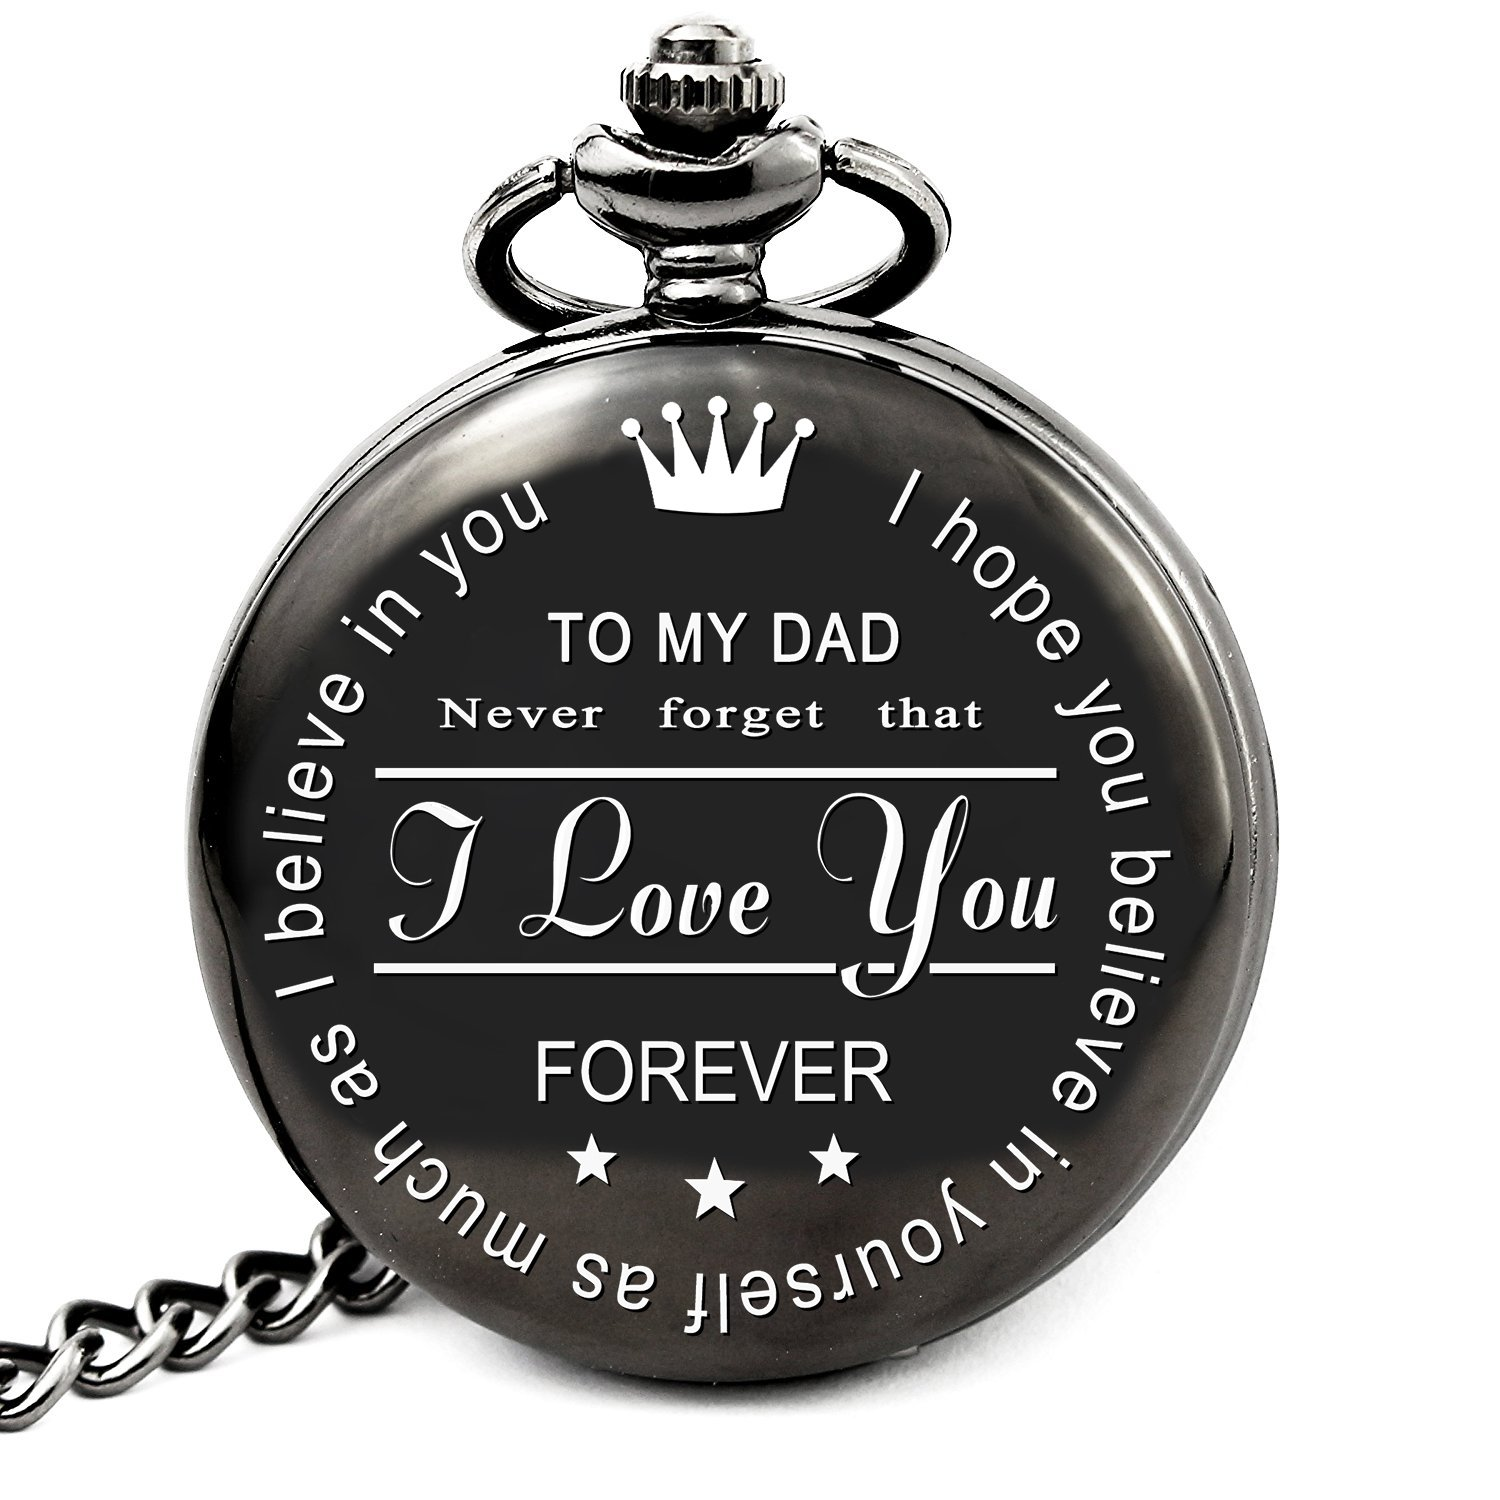 LEVONTA Pocket Watch Dad Gifts for Dad Birthday Gifts From Daughter Dad Gifts From Son (To My Dad)